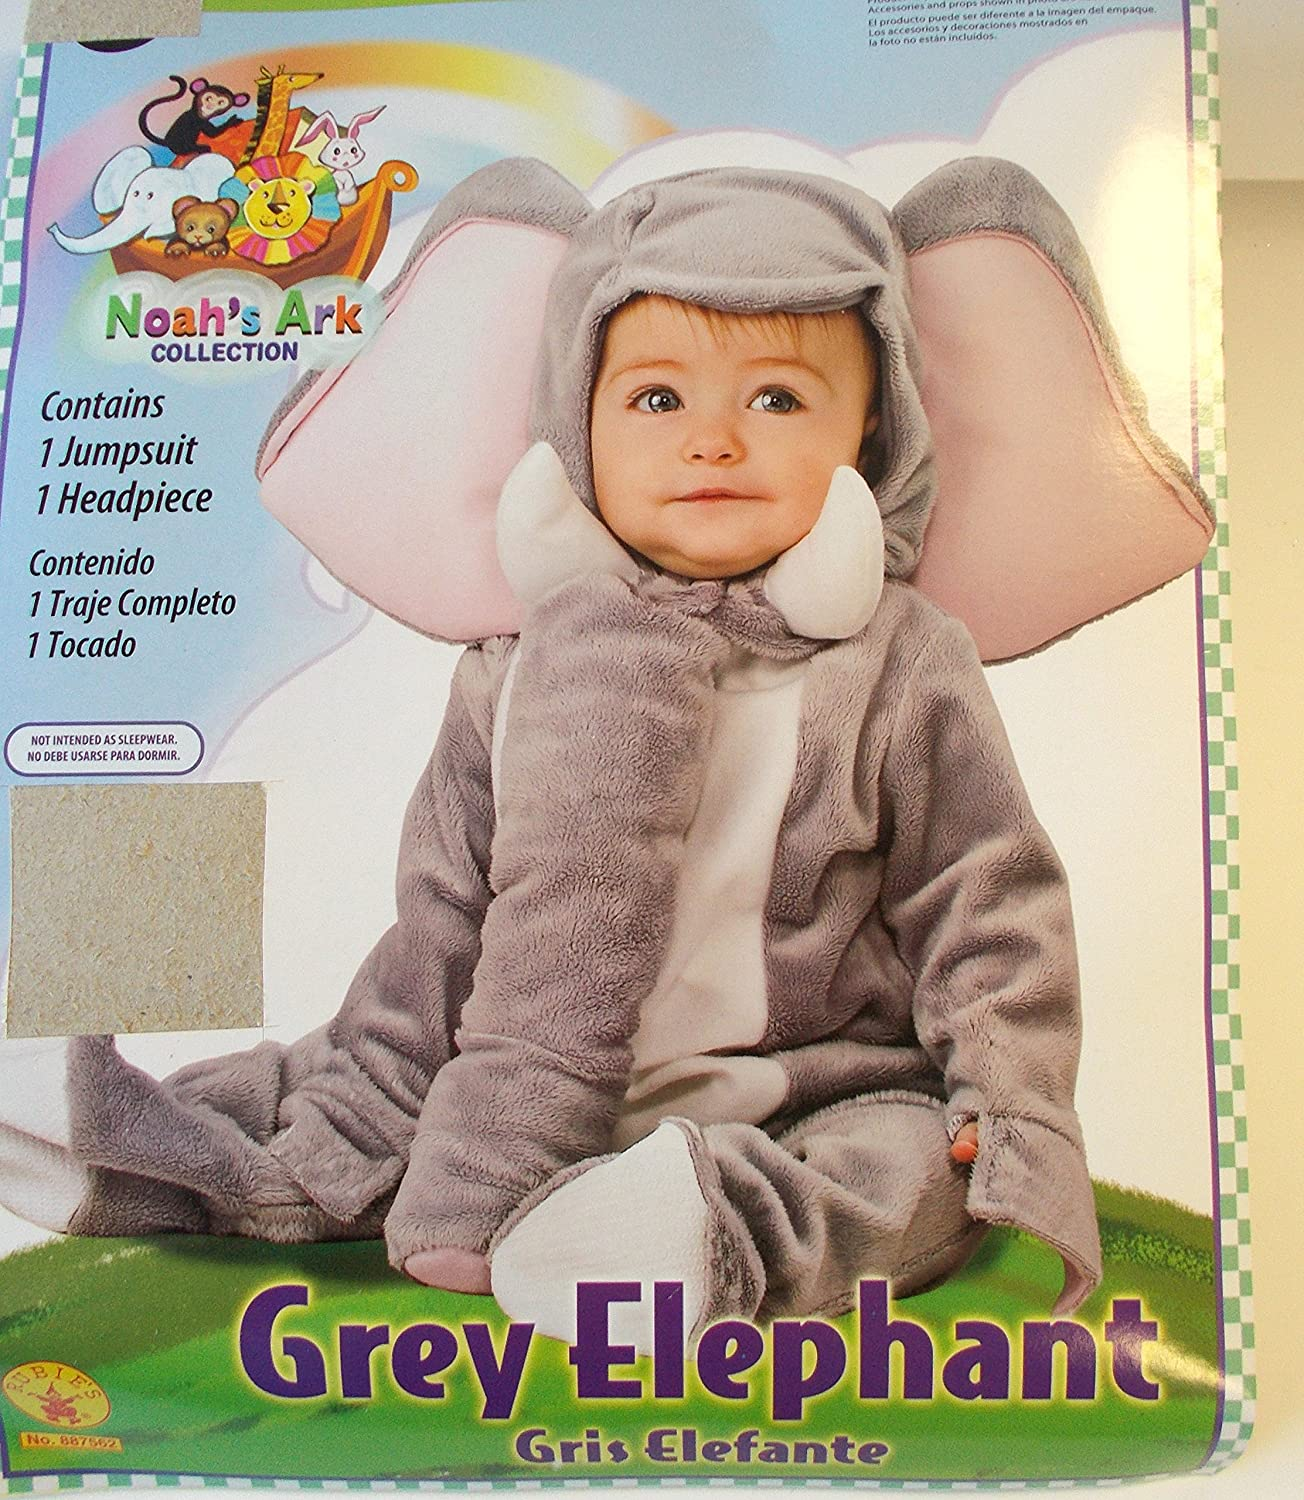 Special price for Shipping included a limited time Noah's Ark Grey Elephant 6-12M Infant NIP Costume